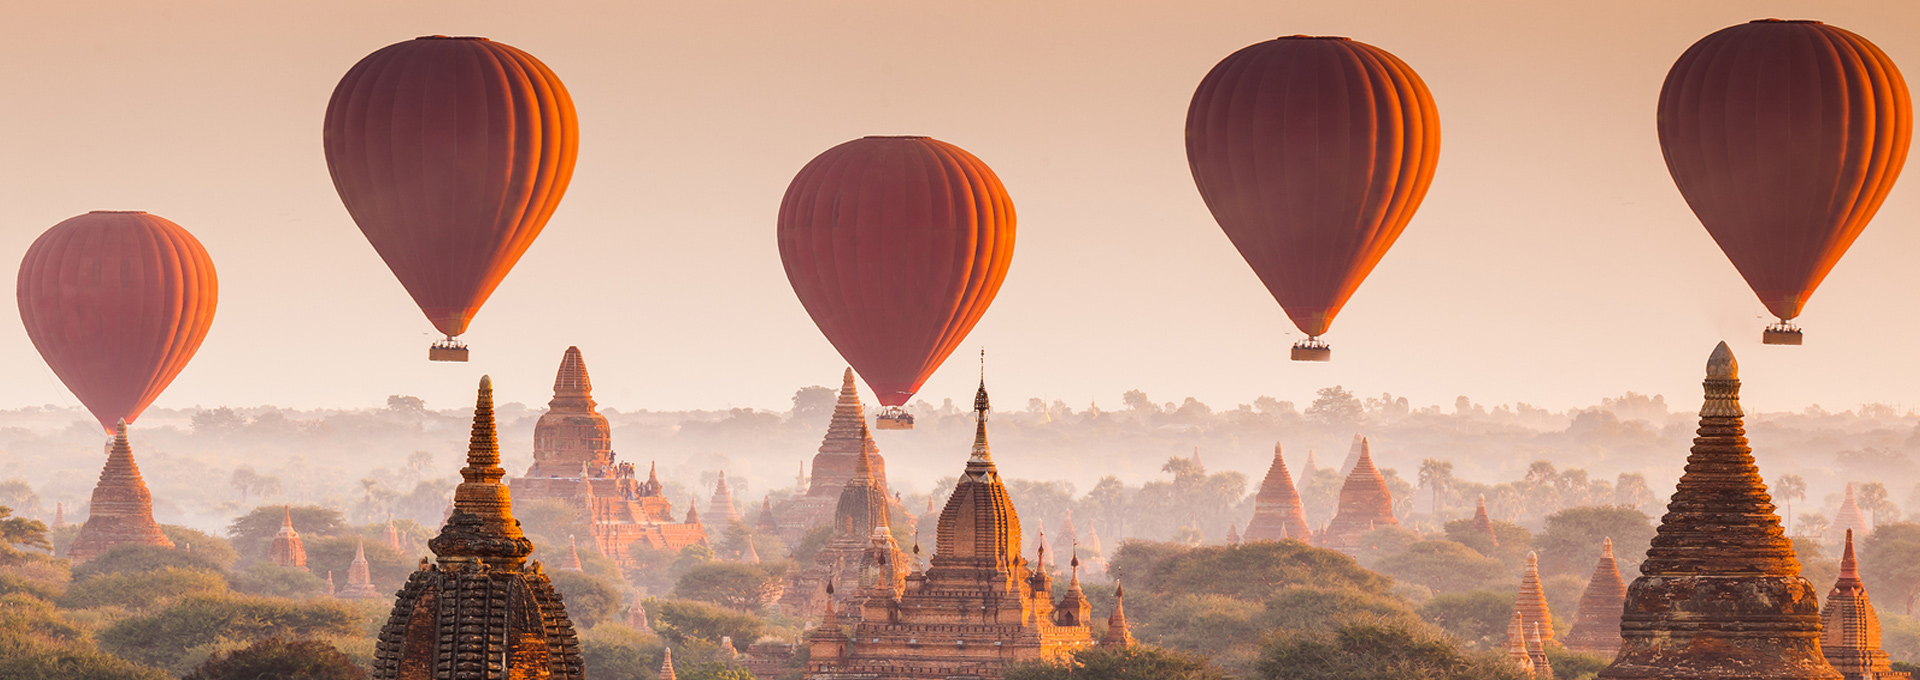 Balloon in Myanmar